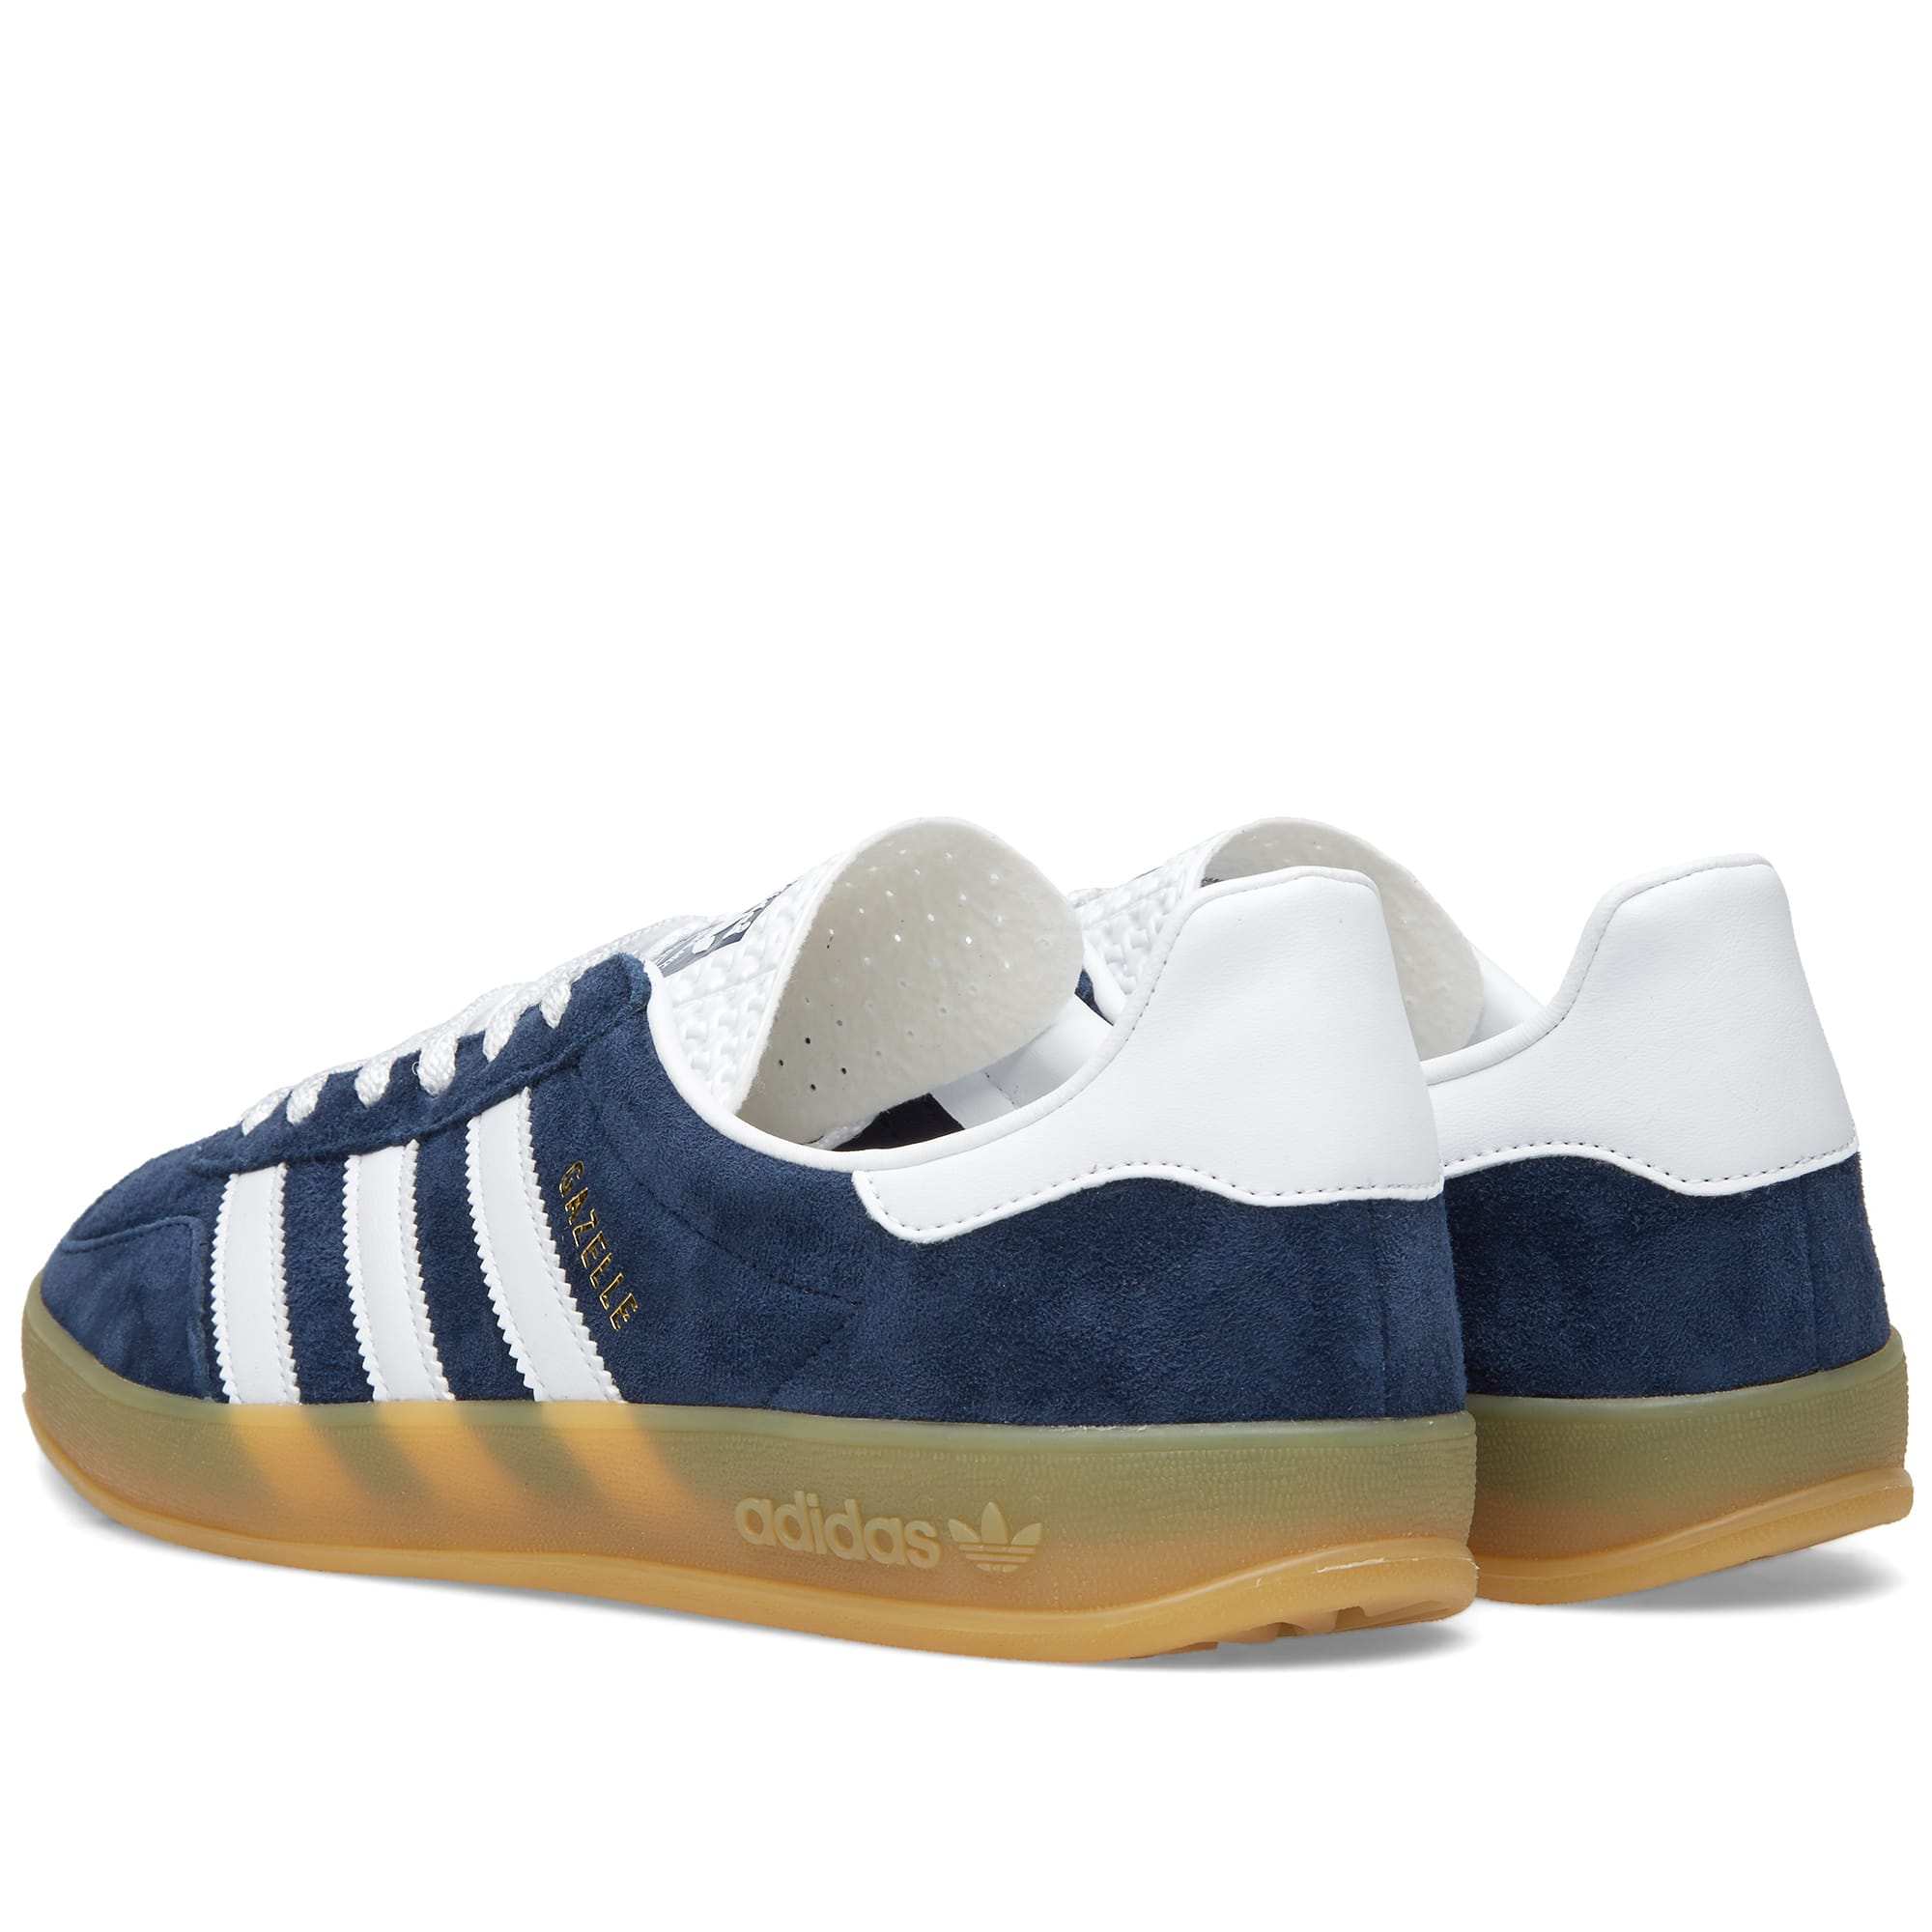 adidas gazelle indoor navy blue on sale > OFF58% Discounted